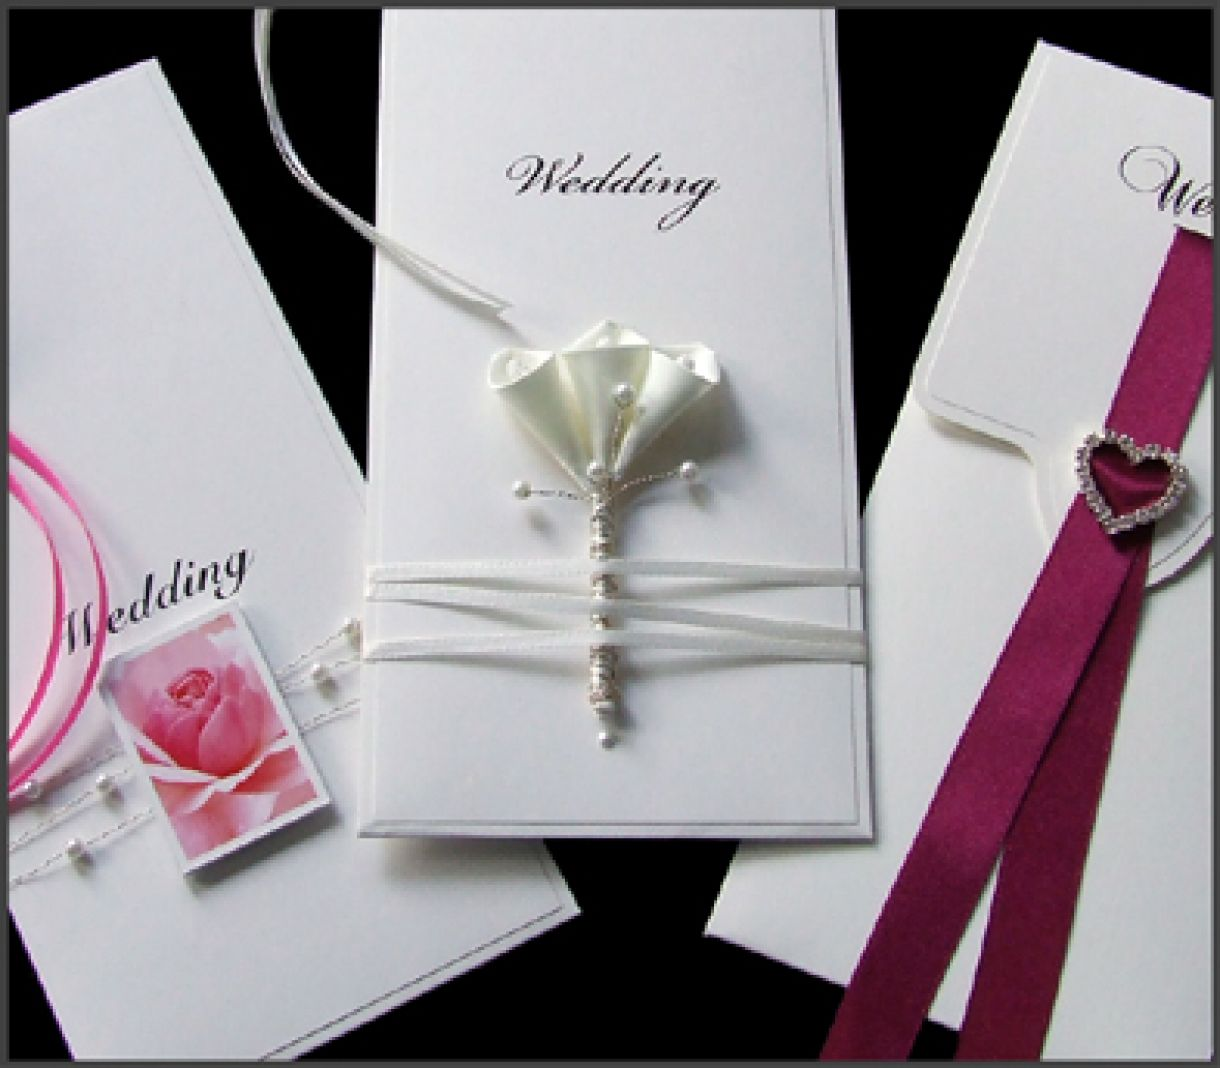 Wedding Invitations Business: Selling Wedding Stationery